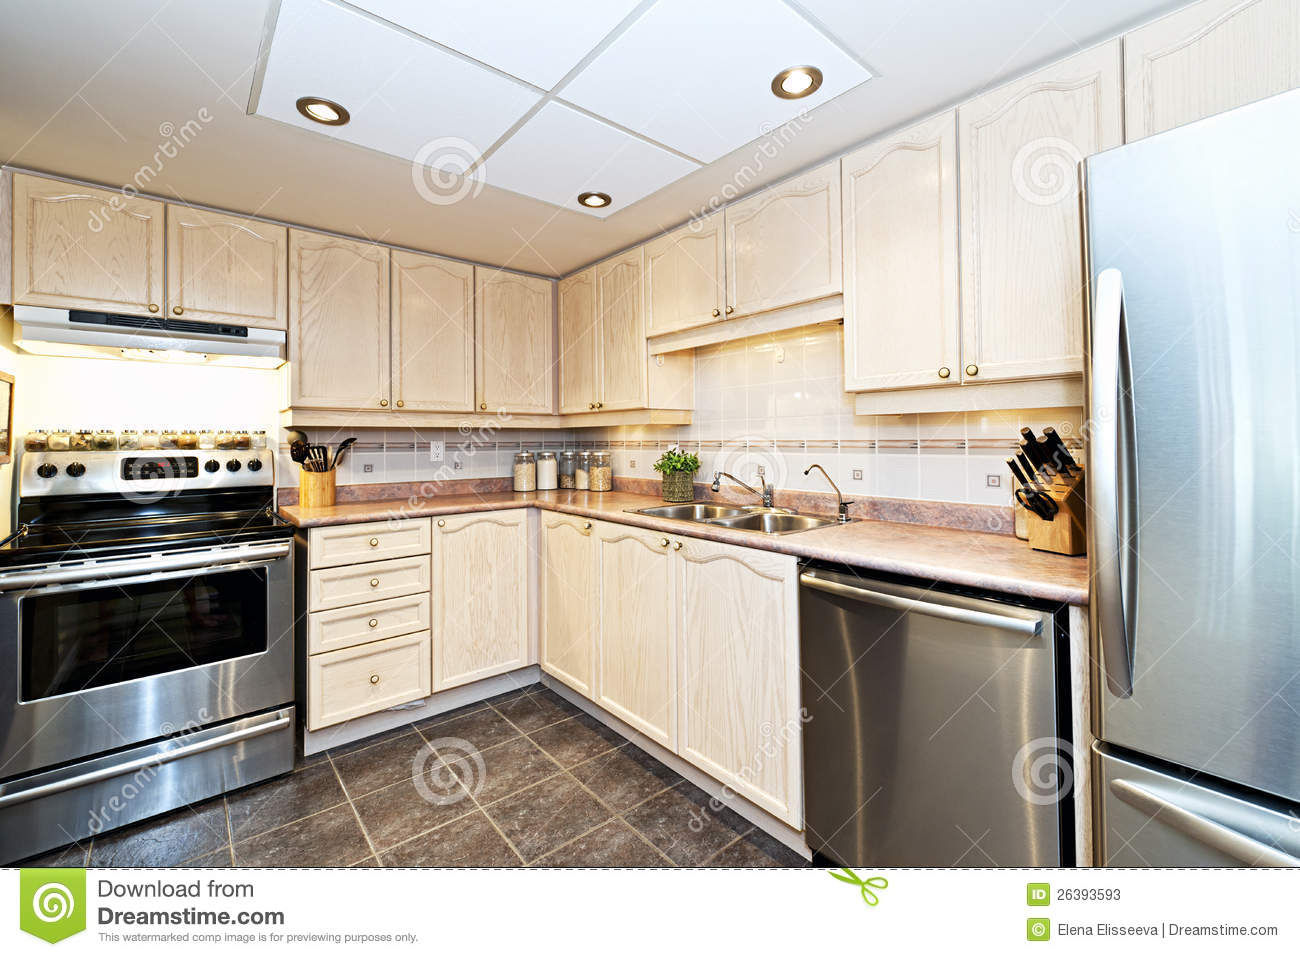 Modern Kitchen With Appliances Stock Image  Image Of. Wall Design In Living Room. Decorating Living Room Ideas 2014. Living Room Paris Combo Lyrics Translation. Set Up Home Office In Living Room. Modern House Living Room. Living Room 14 X 11. Living Room Modern Interior Designs. Living Room In Tiffany Blue